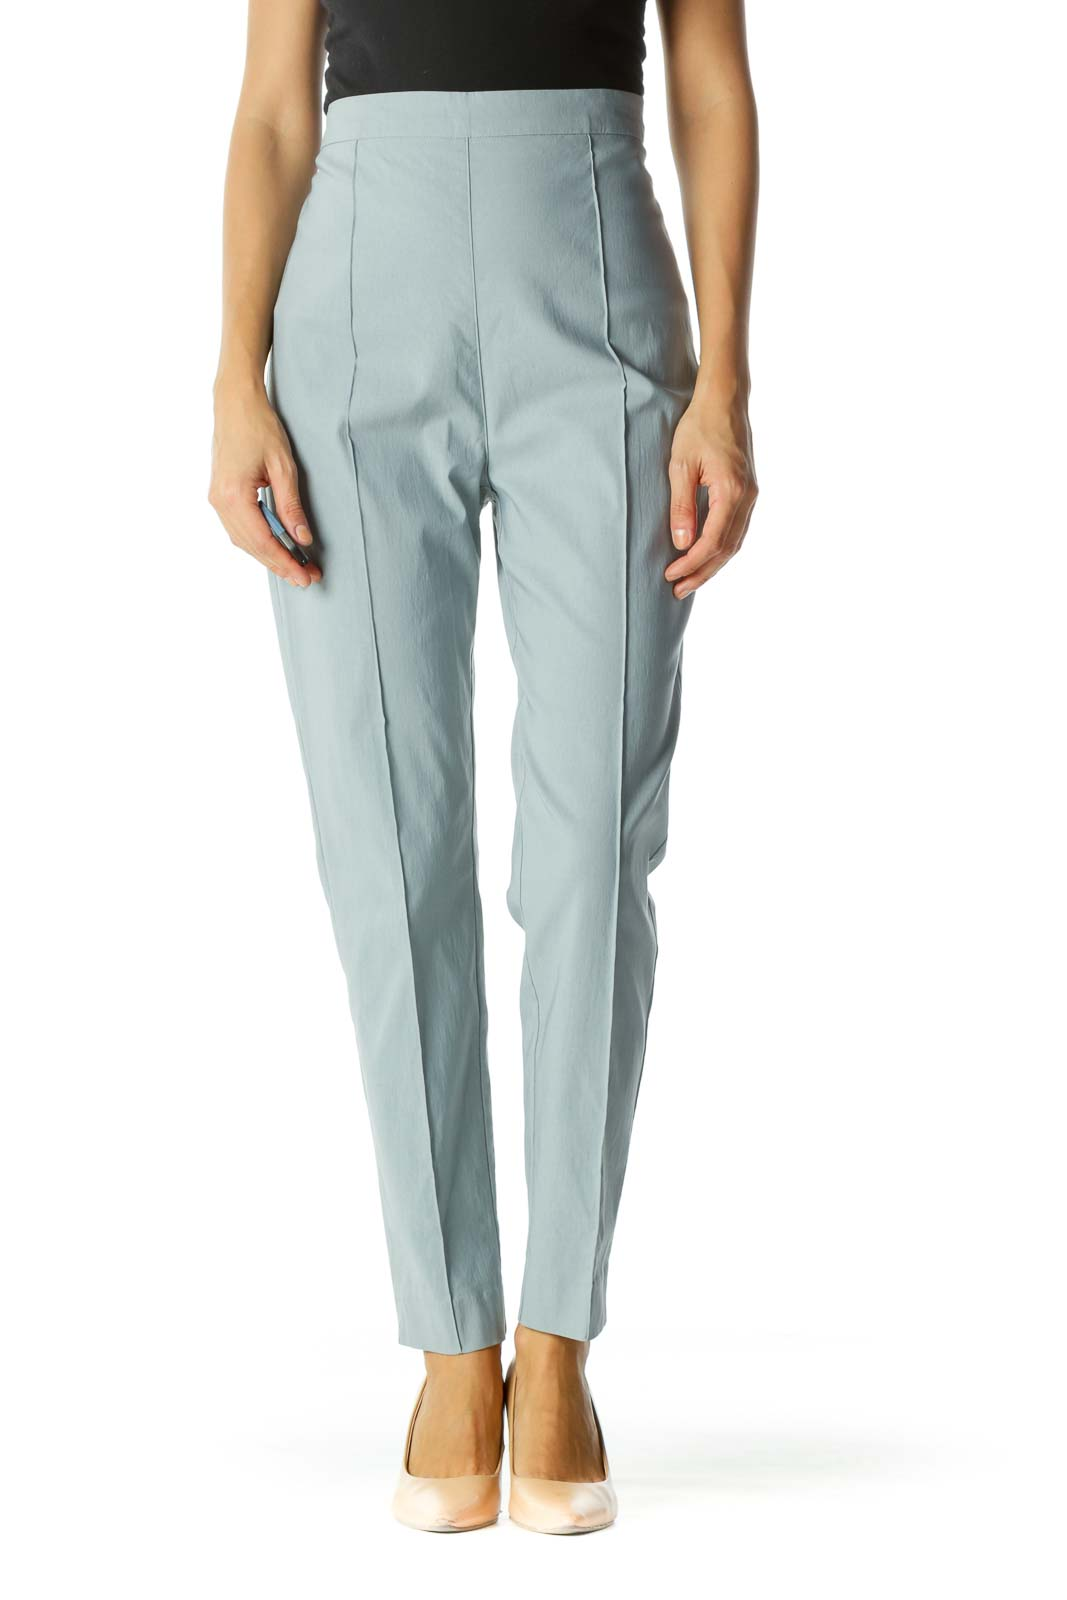 Light Blue Raised Center Seam Zippered Skinny Pants